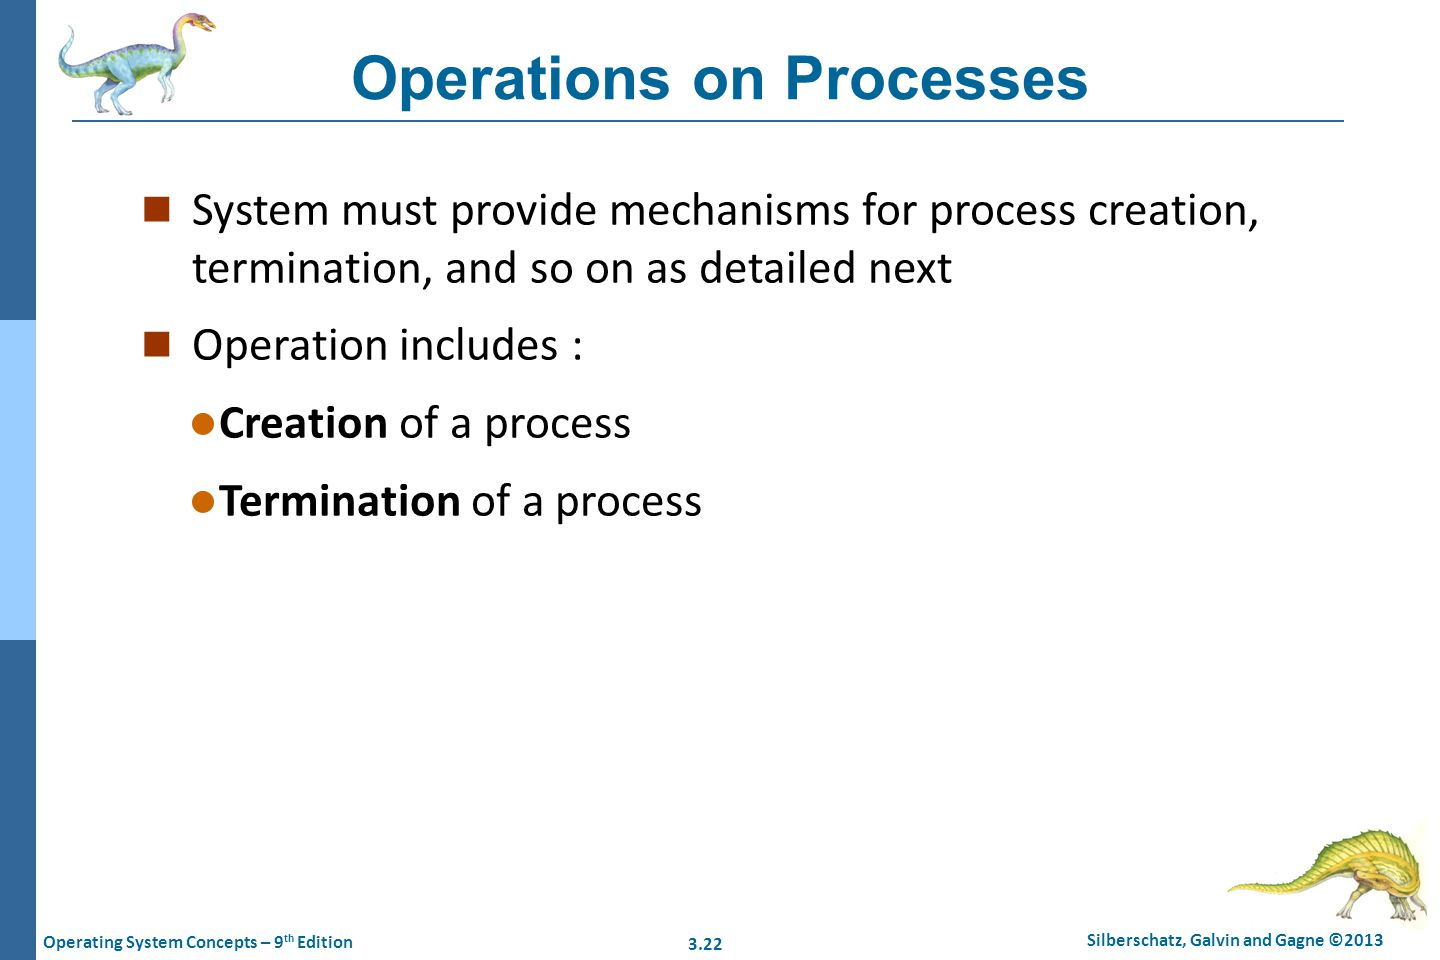 Operations on Processes